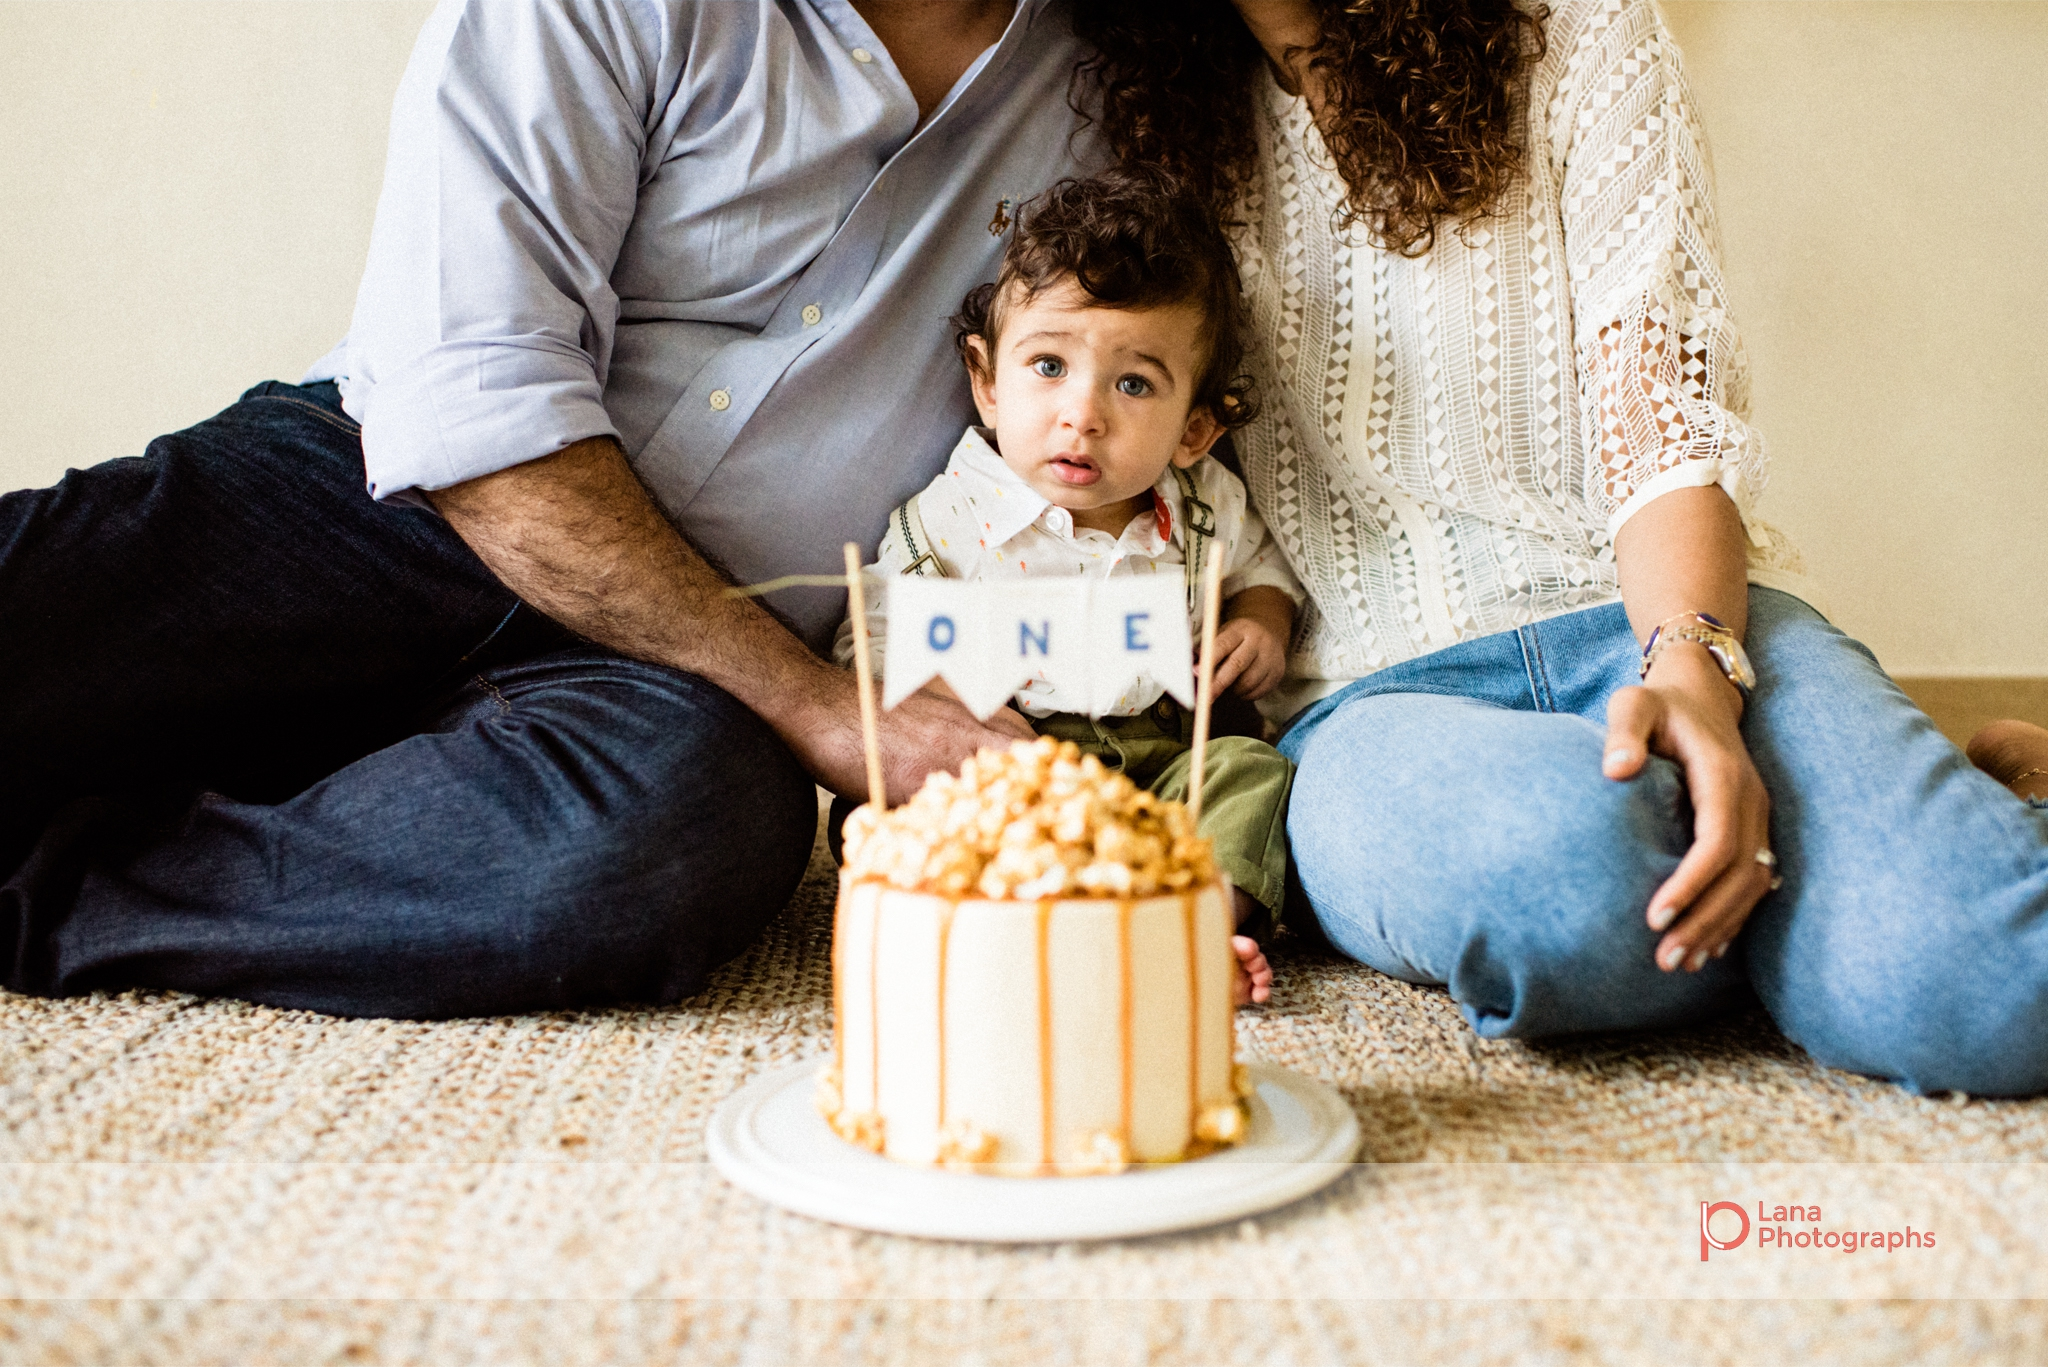 Dubai Cake Smash one year old baby poses with parents and birthday cake